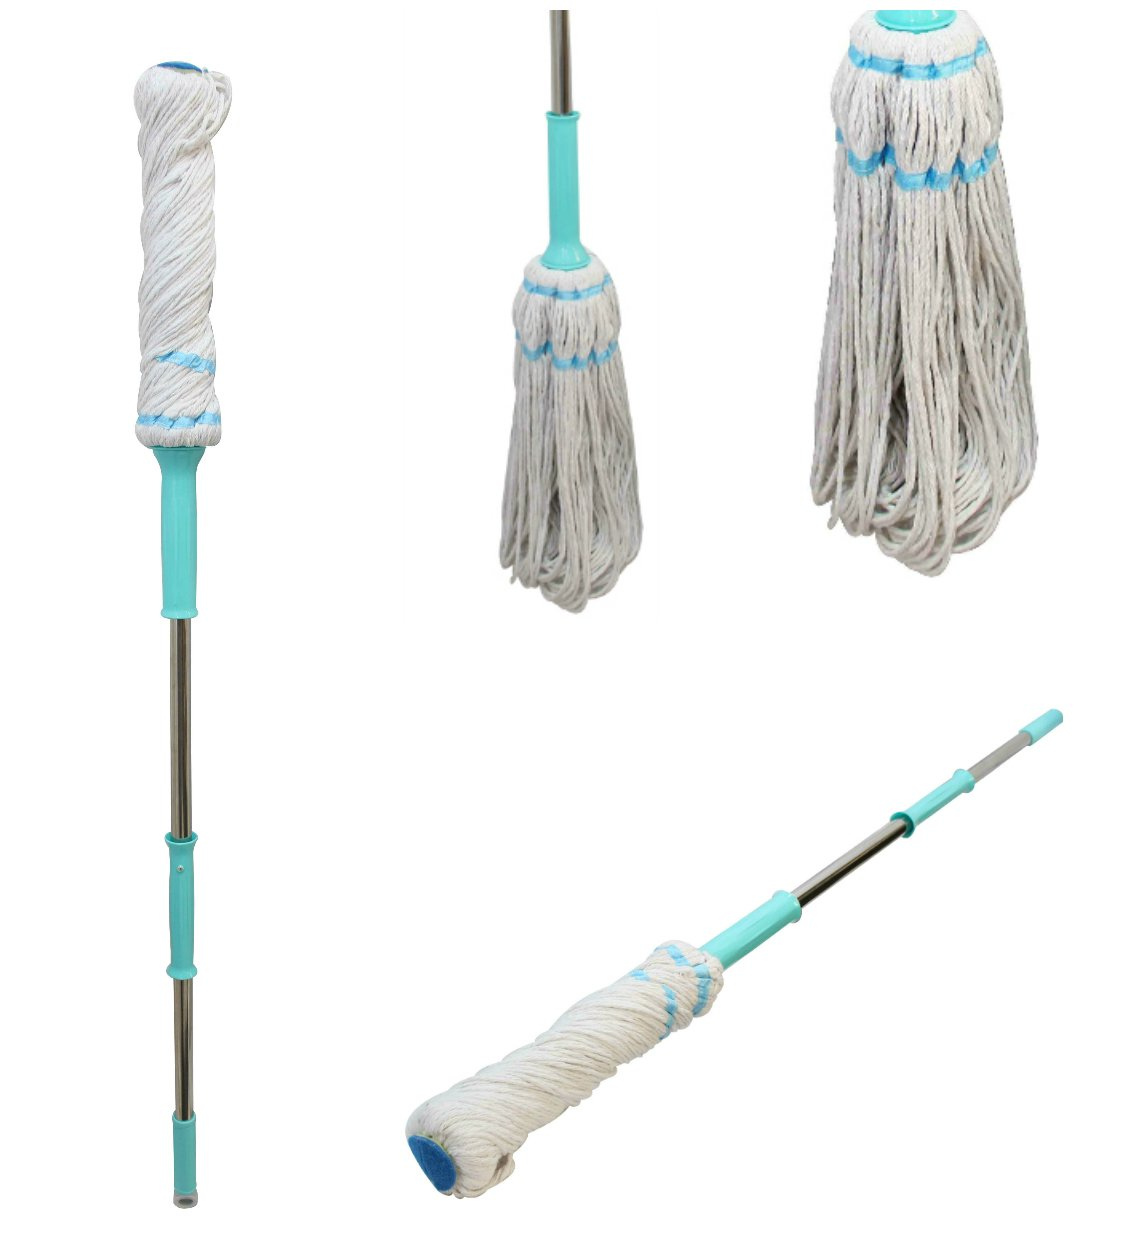 360 degree twist mop floor mop easy rotating squeeze mopping neat compact white ebay. Black Bedroom Furniture Sets. Home Design Ideas